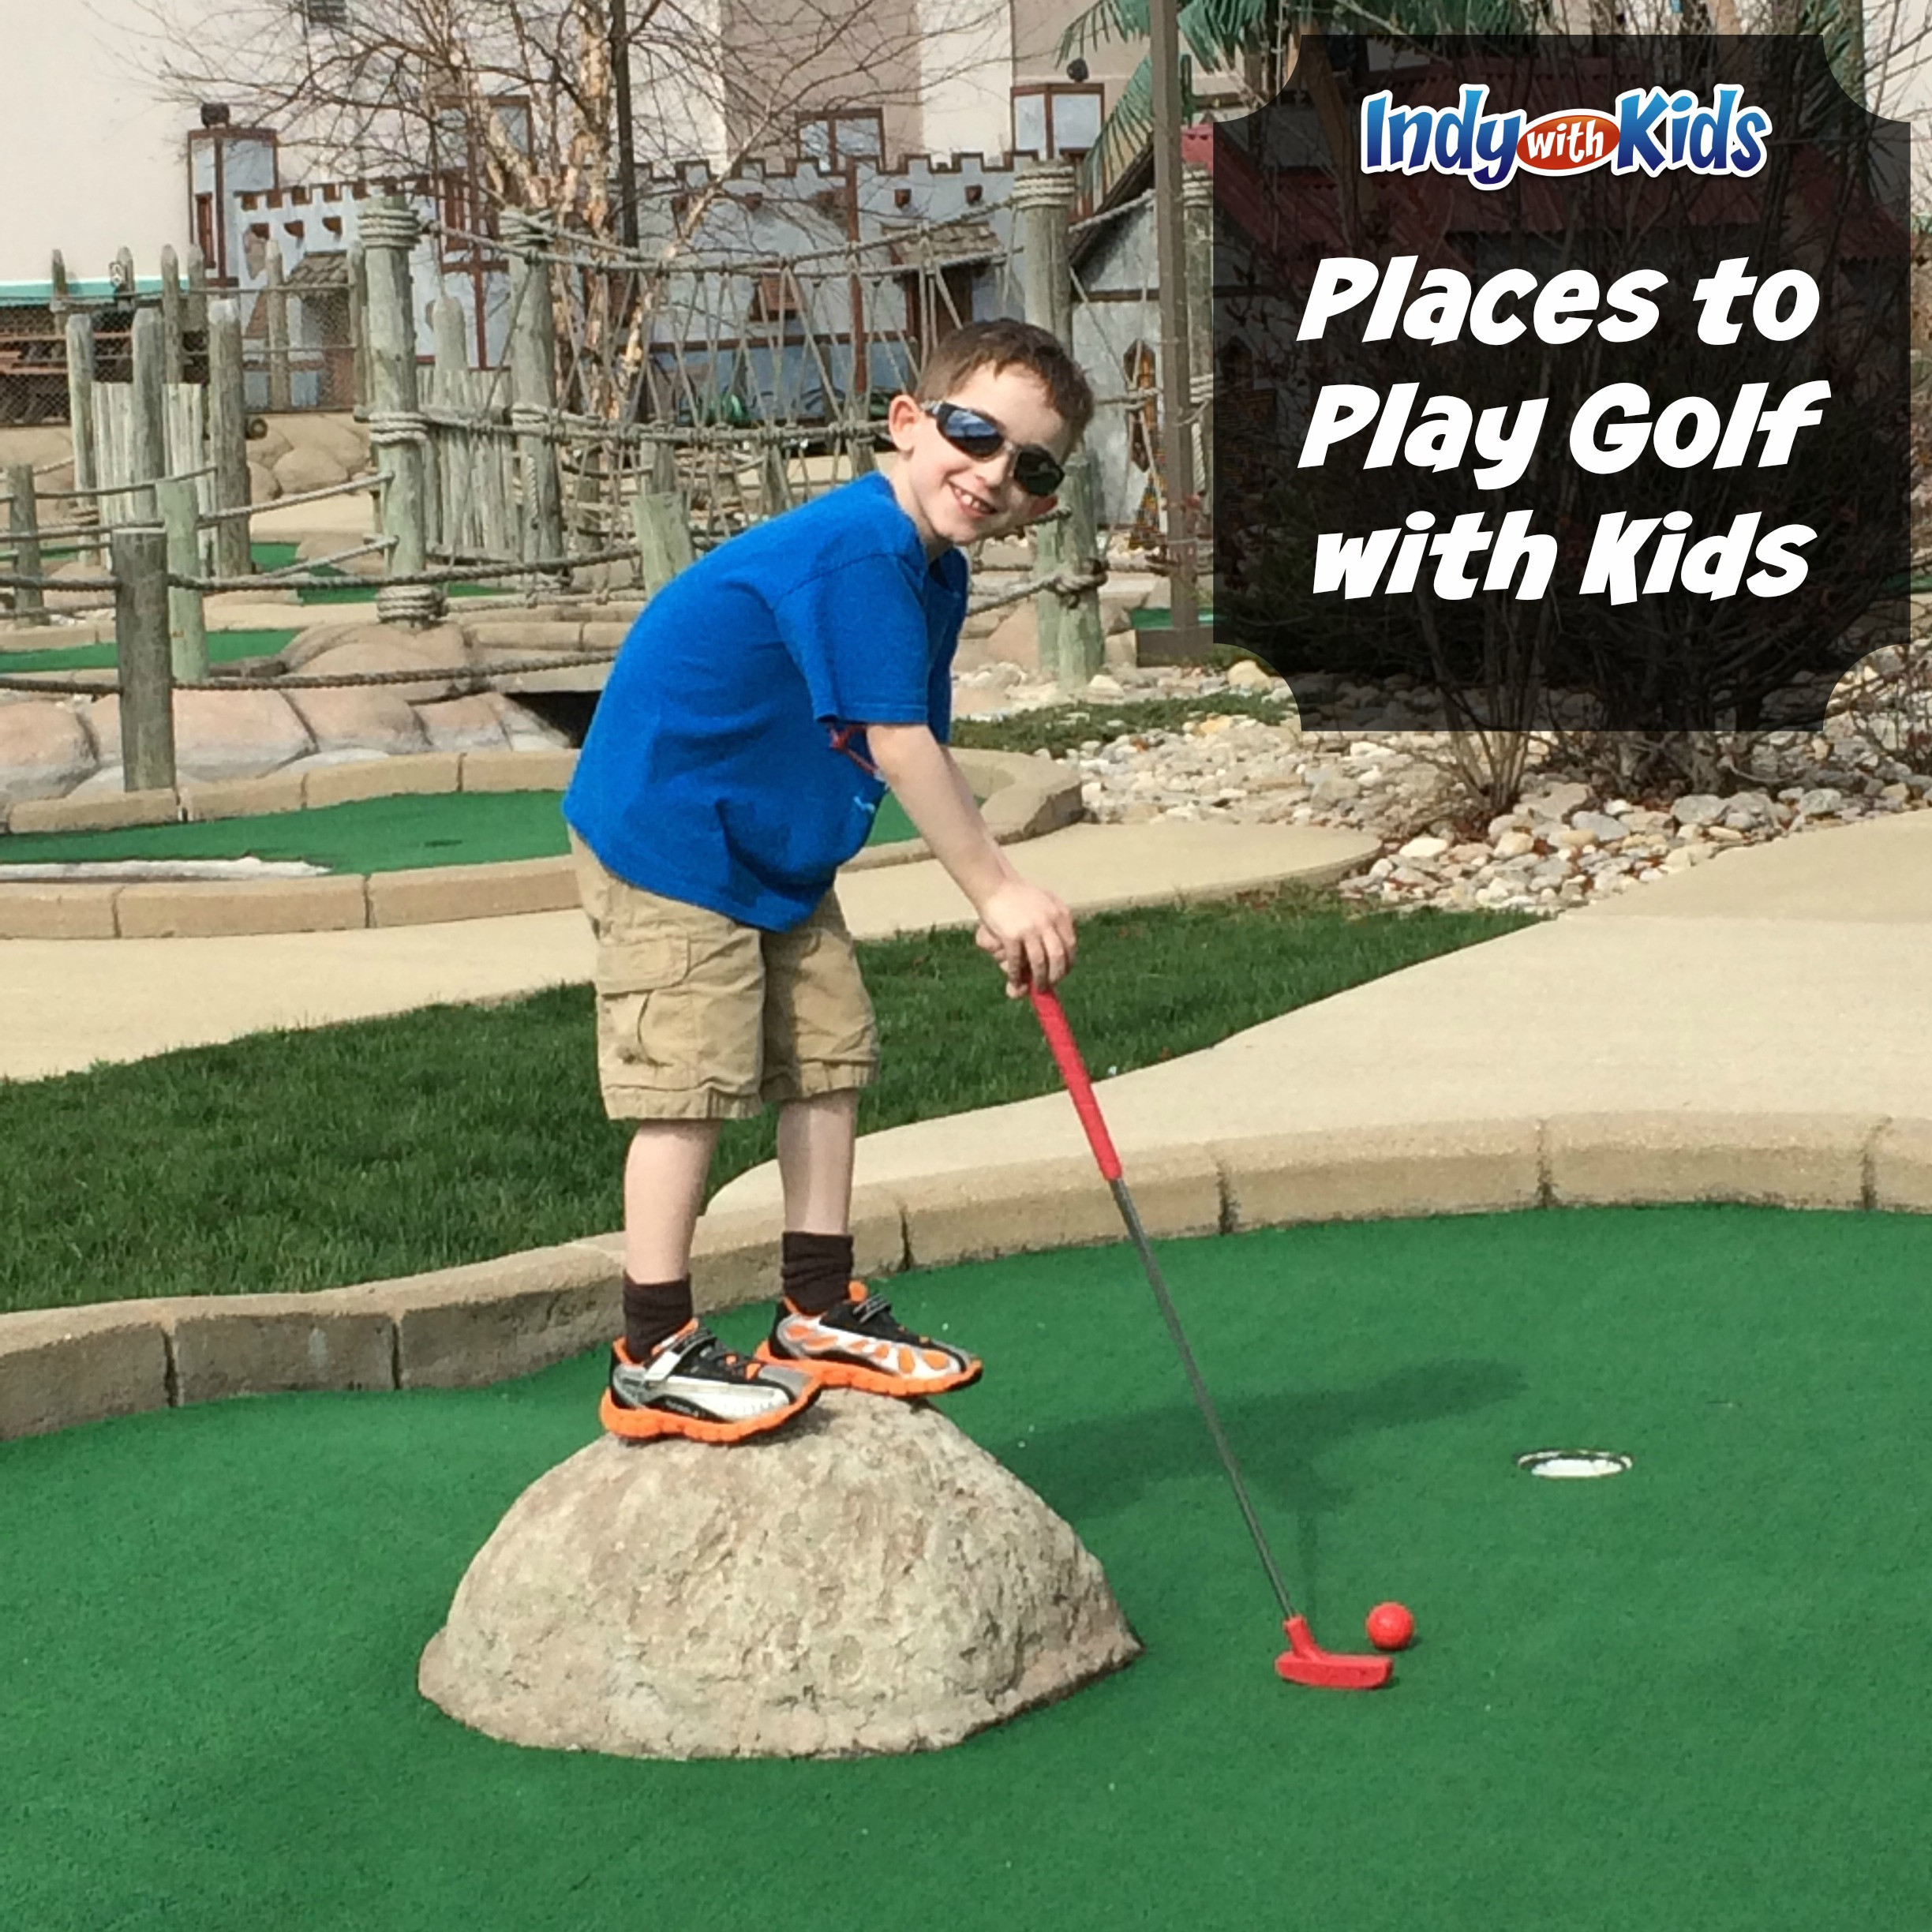 Fun Places to Play Golf with Kids in Indy